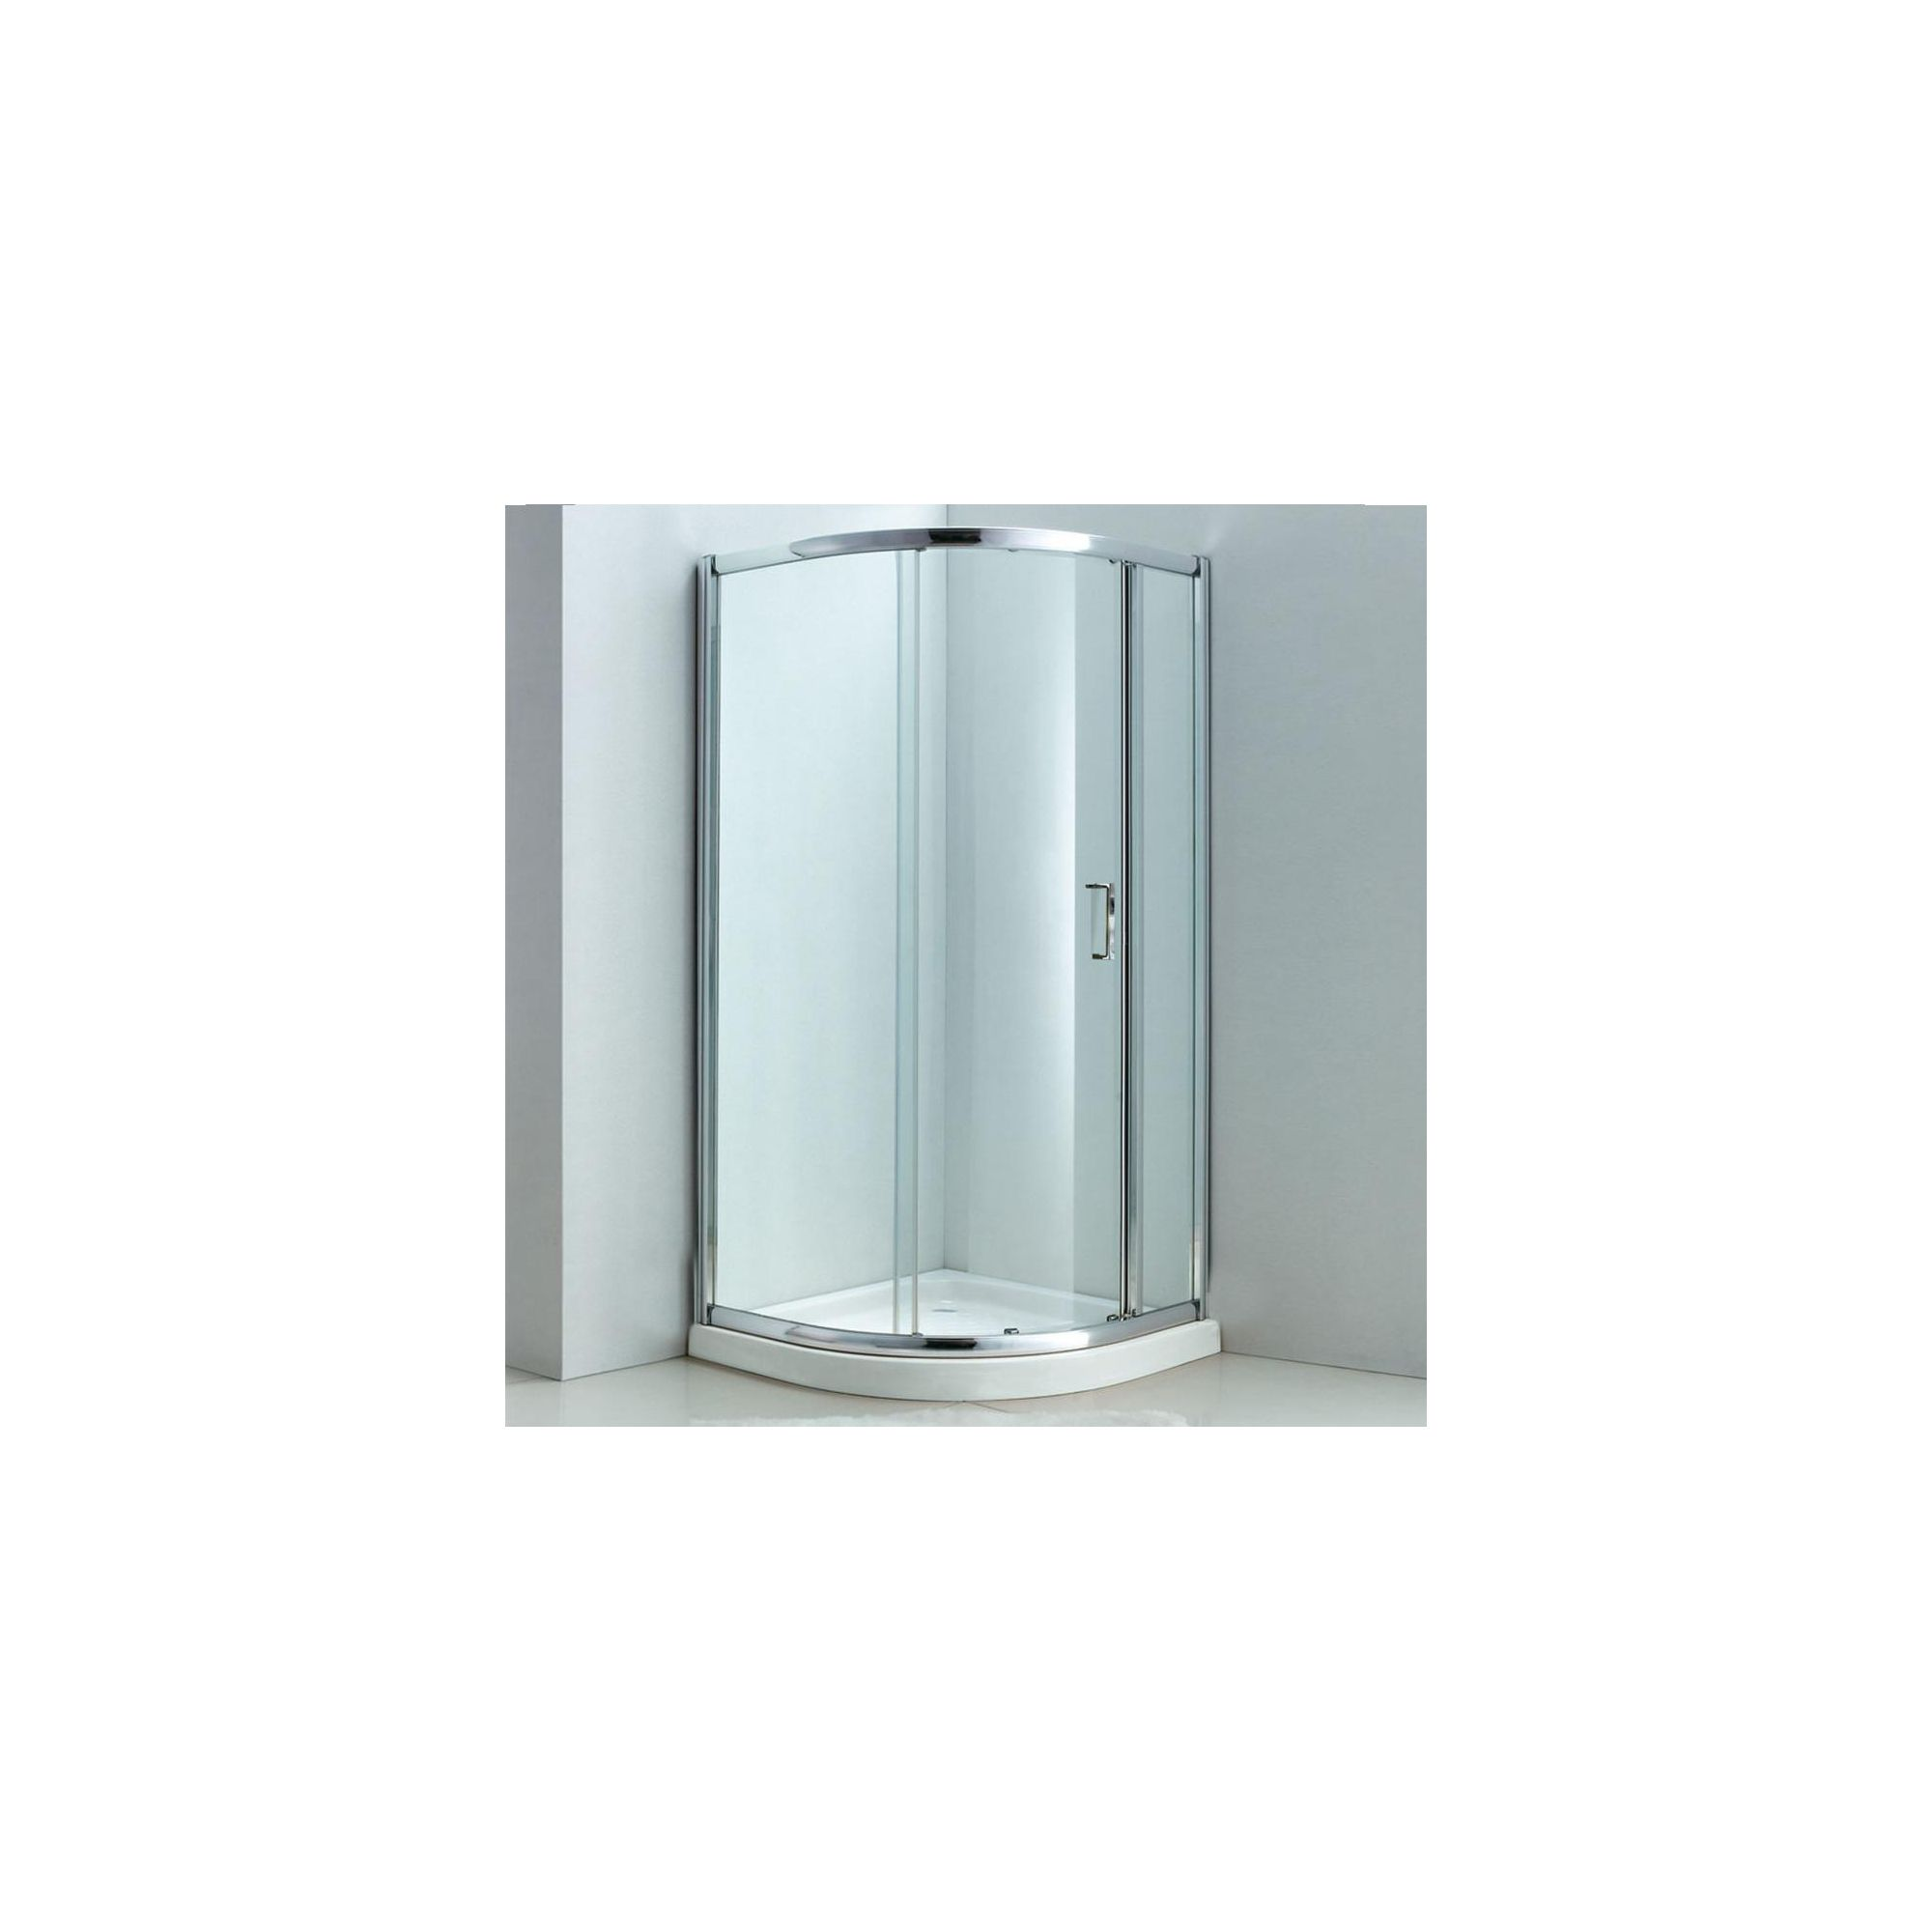 Duchy Style Single Quadrant Shower Door, 900mm x 900mm, 6mm Glass at Tesco Direct